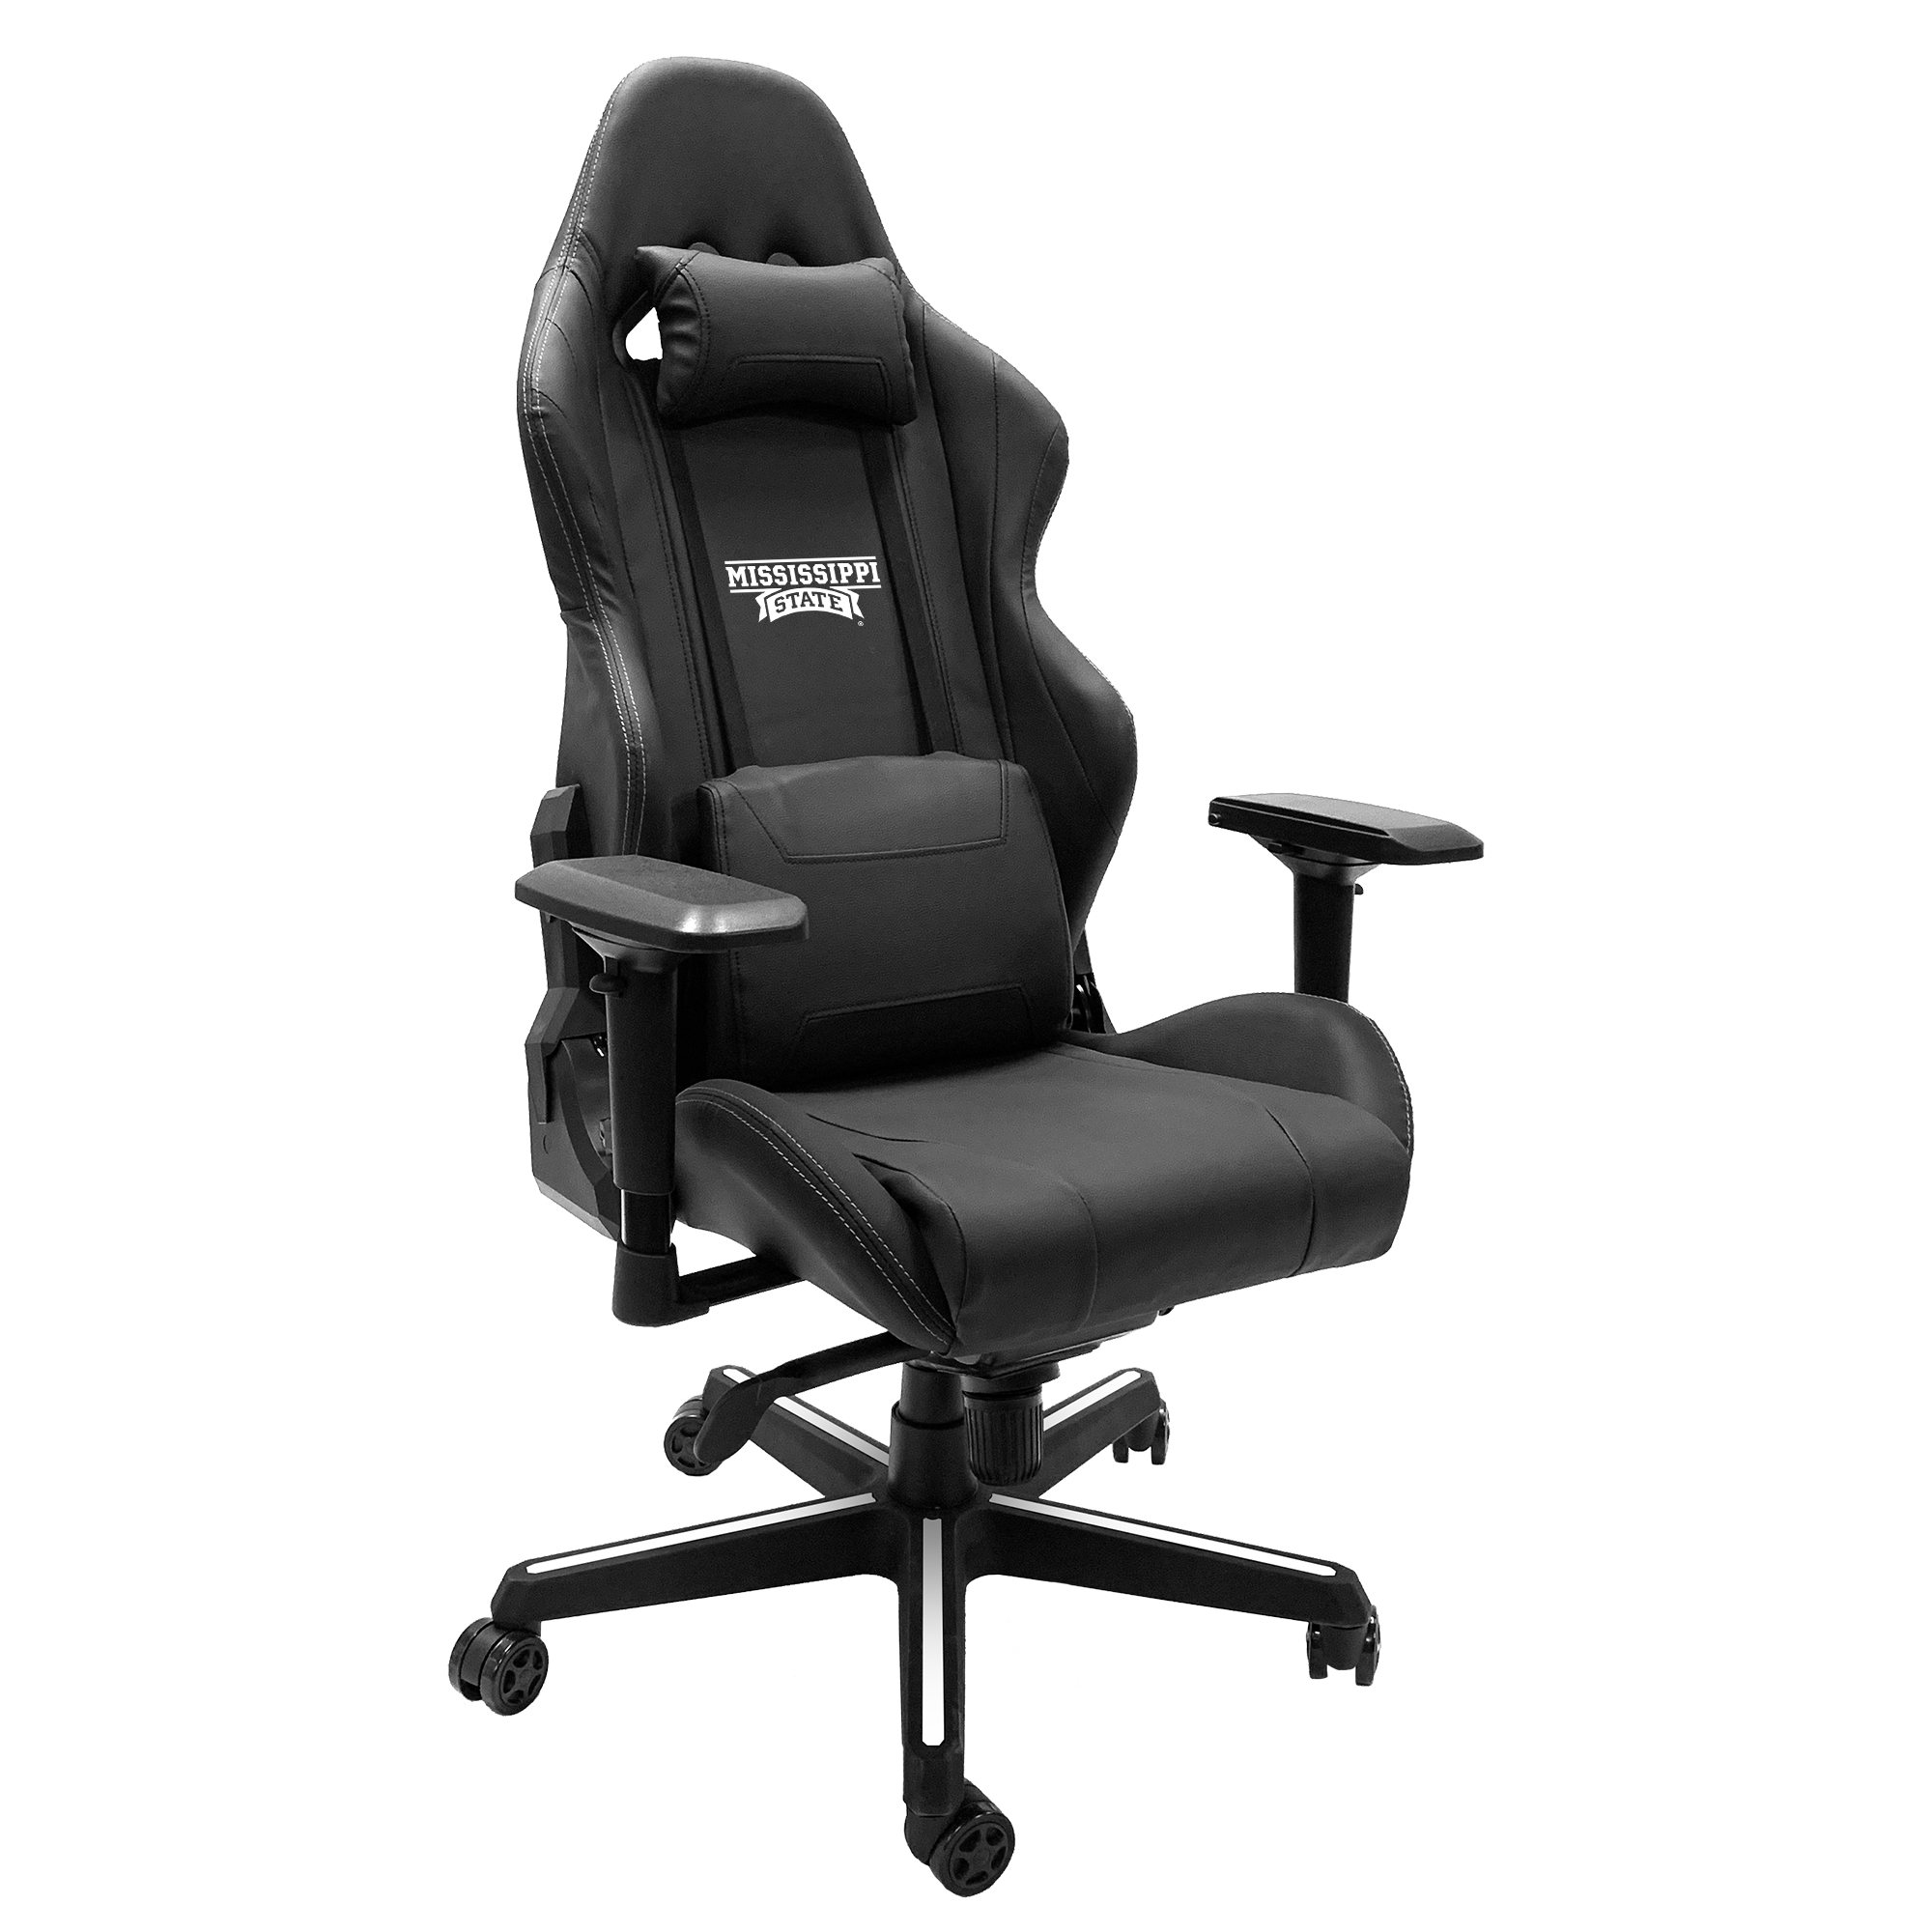 Xpression Gaming Chair with Mississippi State Alternate